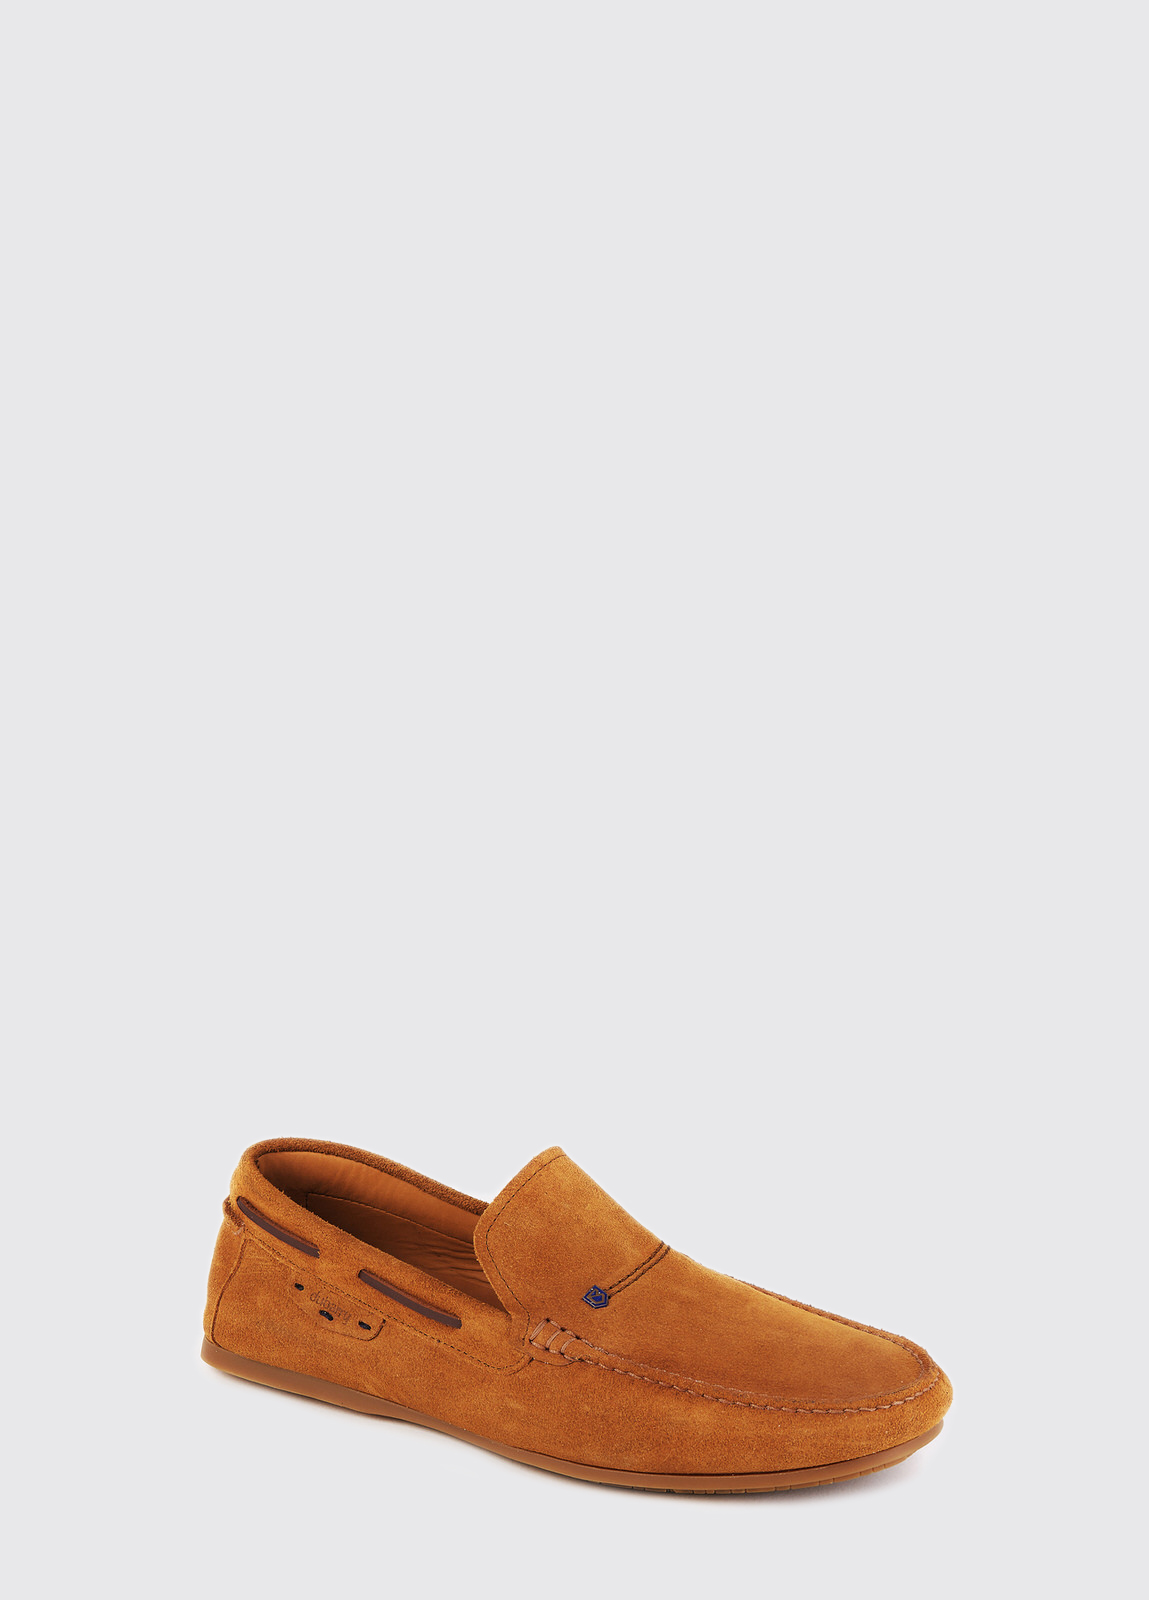 Tobago Loafer - Cognac